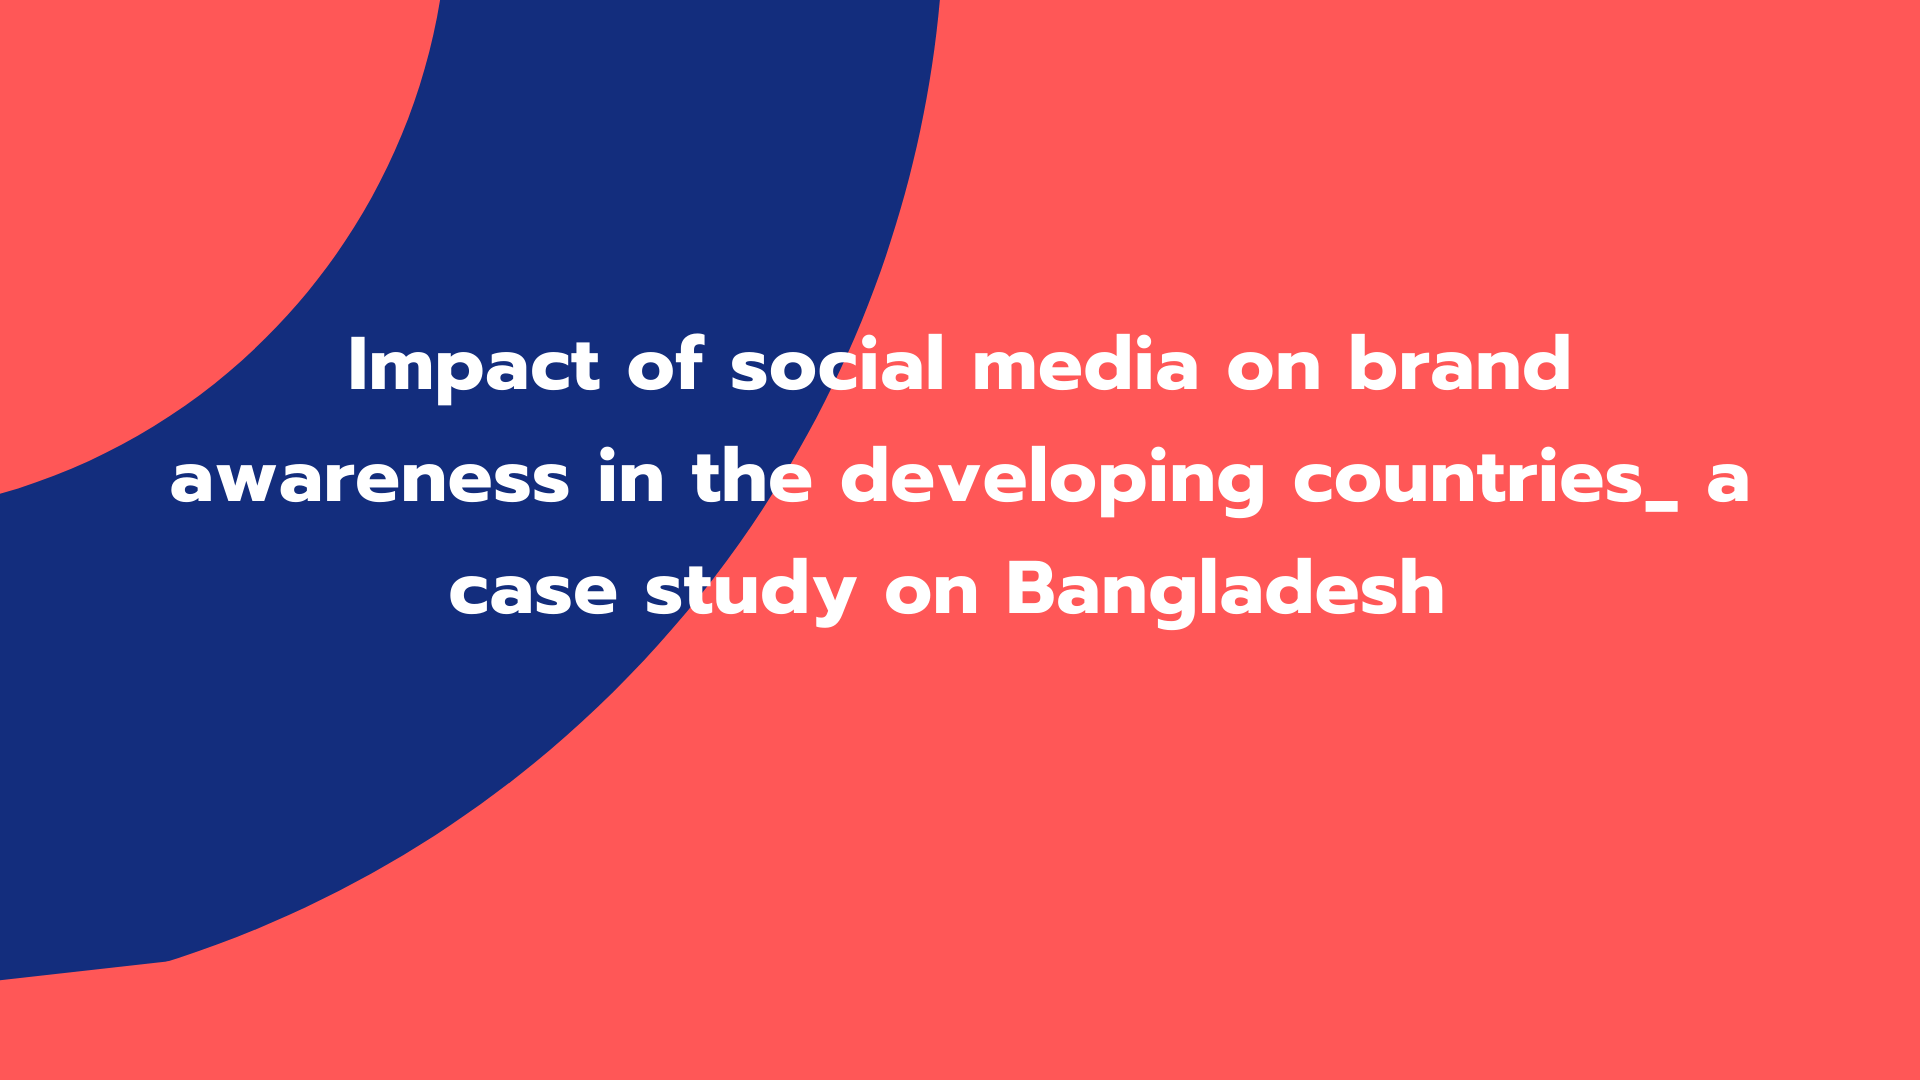 Impact of social media on brand awareness in the developing countries_ a case study on Bangladesh